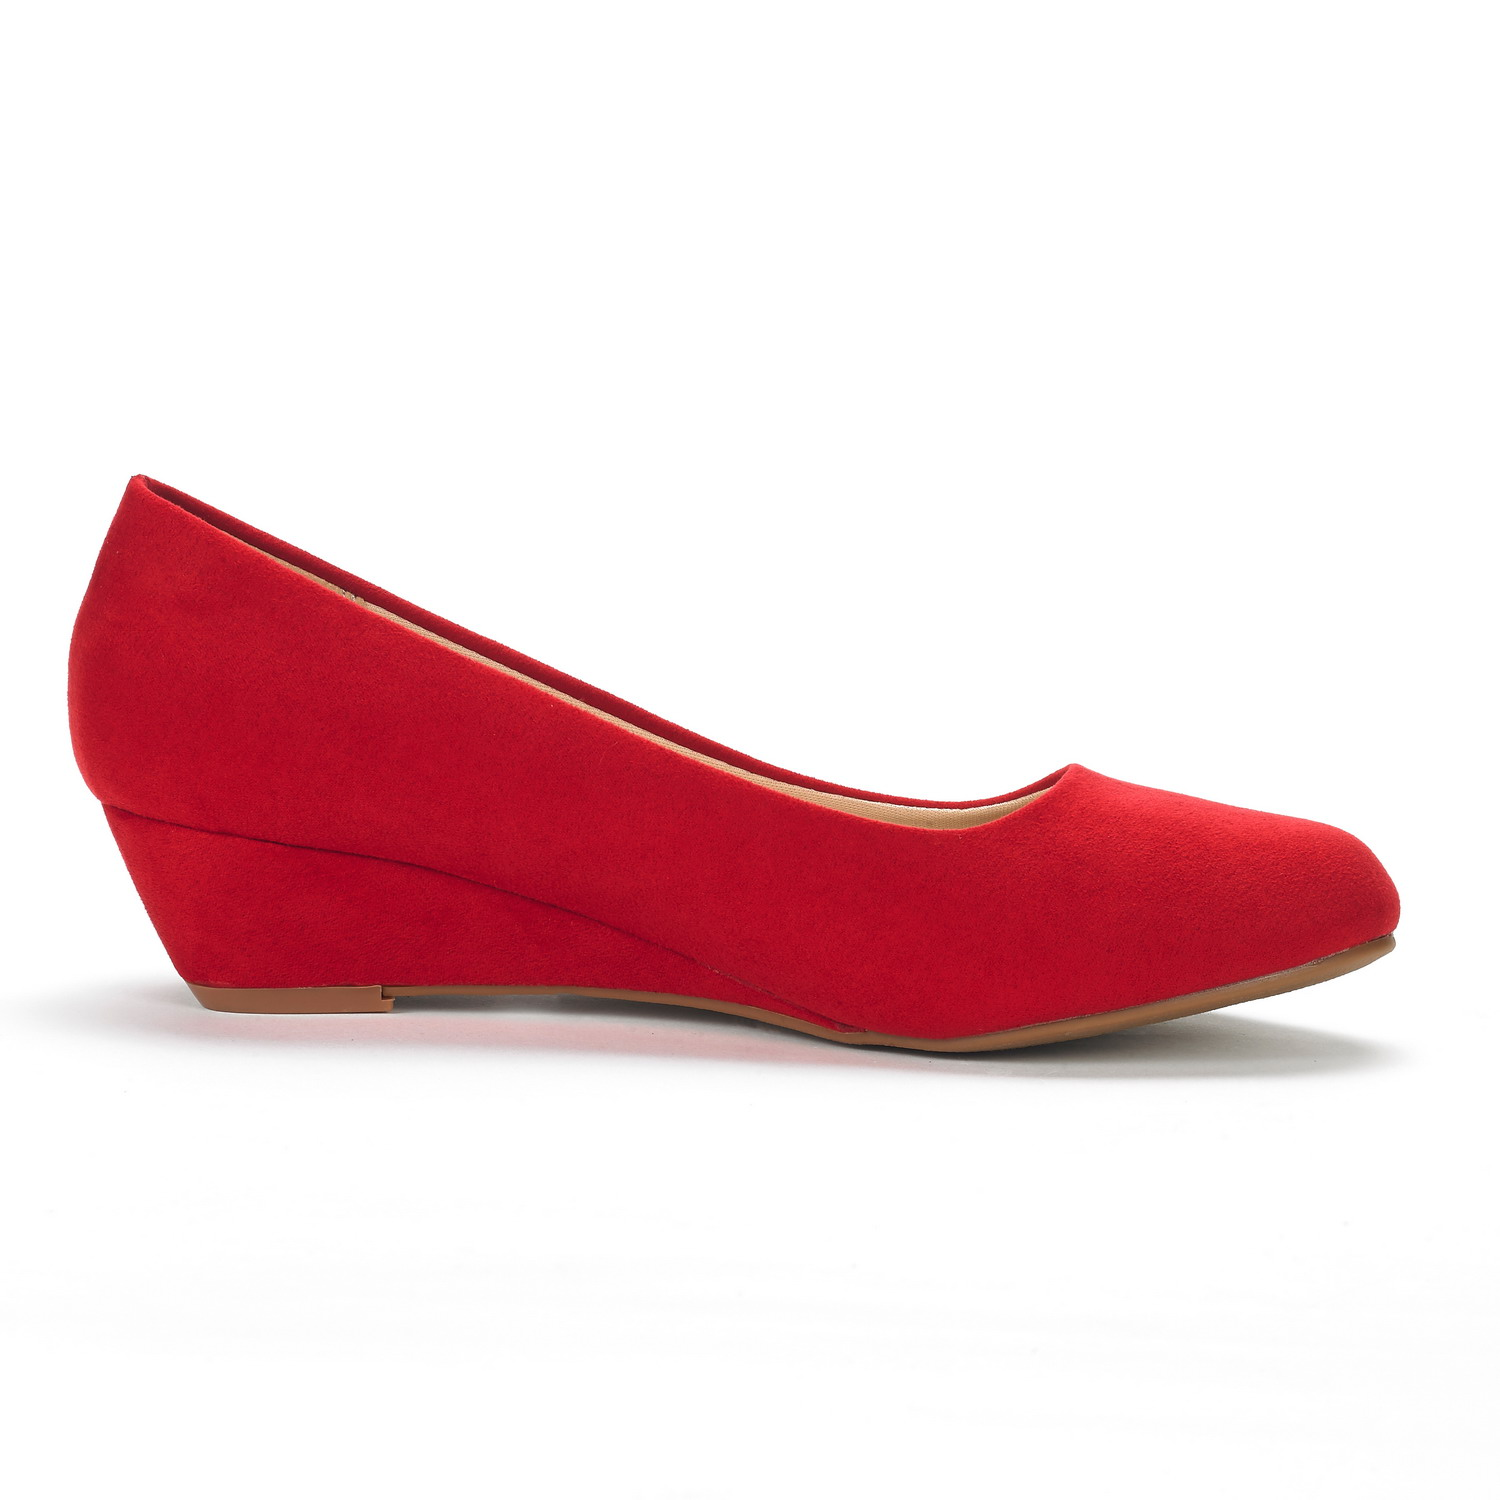 DREAM-PAIRS-Women-039-s-Mid-Wedge-Heel-Shoes-Slip-On-Comfort-Dress-Shoes-Suede-PU thumbnail 33